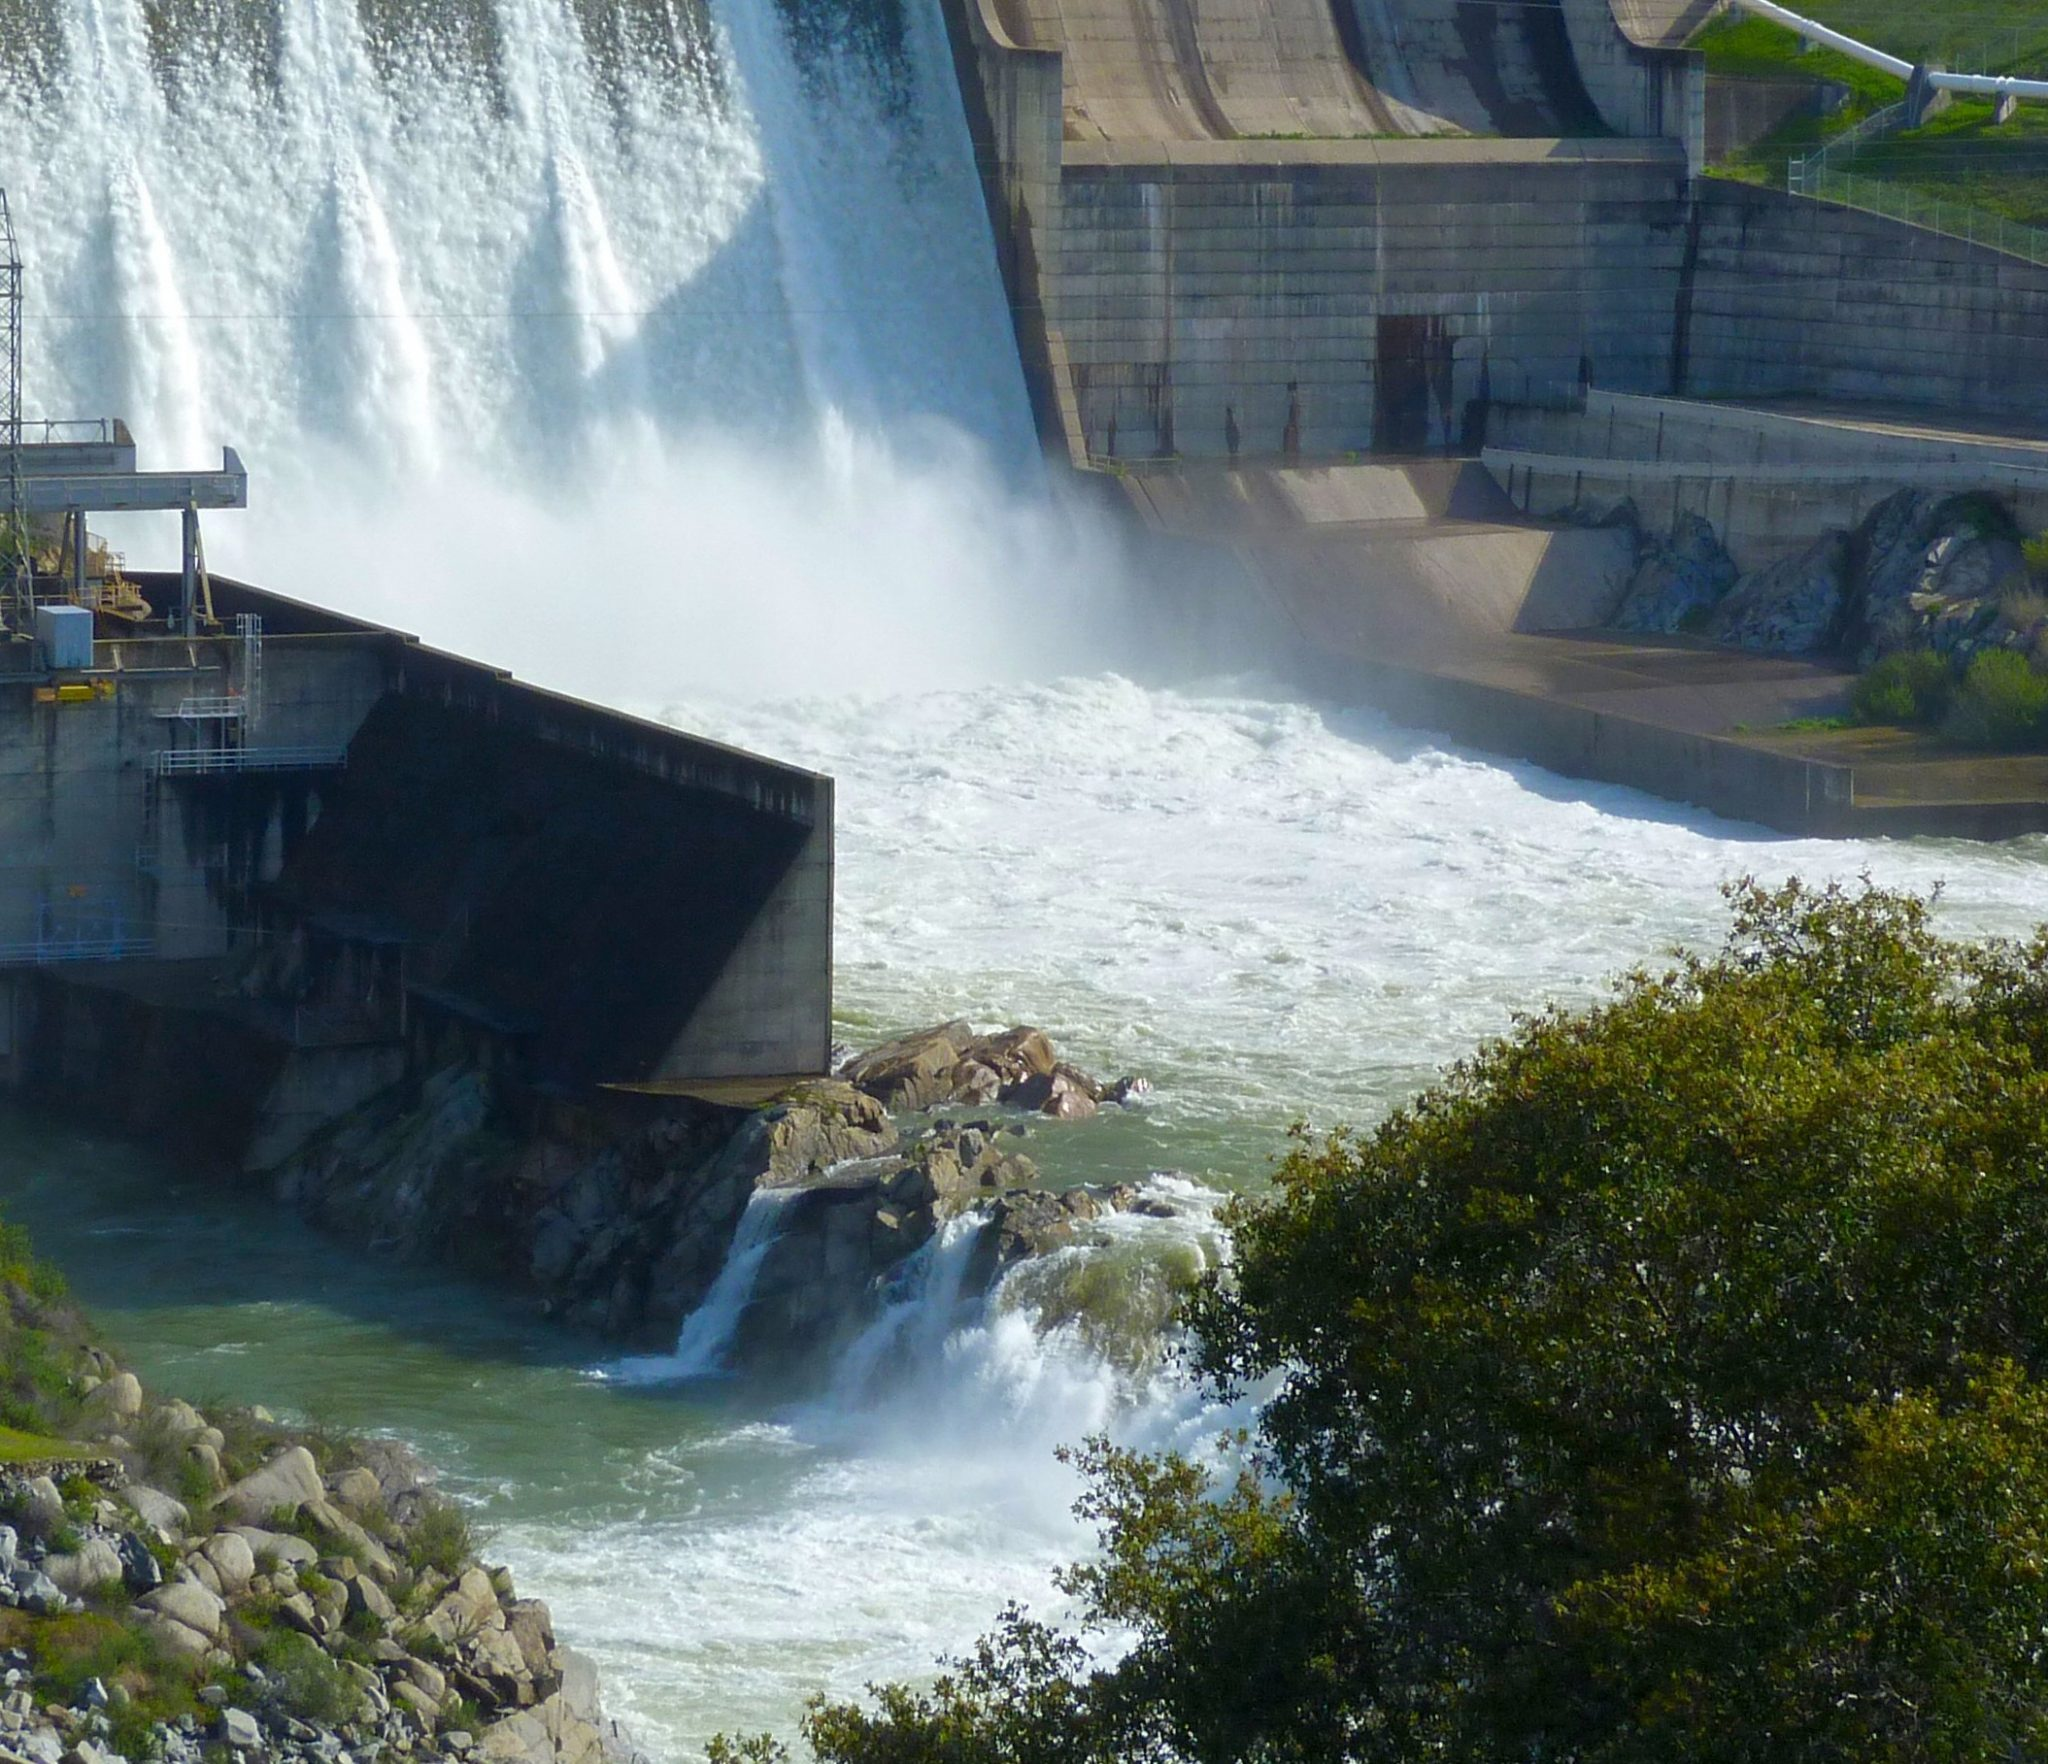 Construction of major hydro-power project in Zambia launched